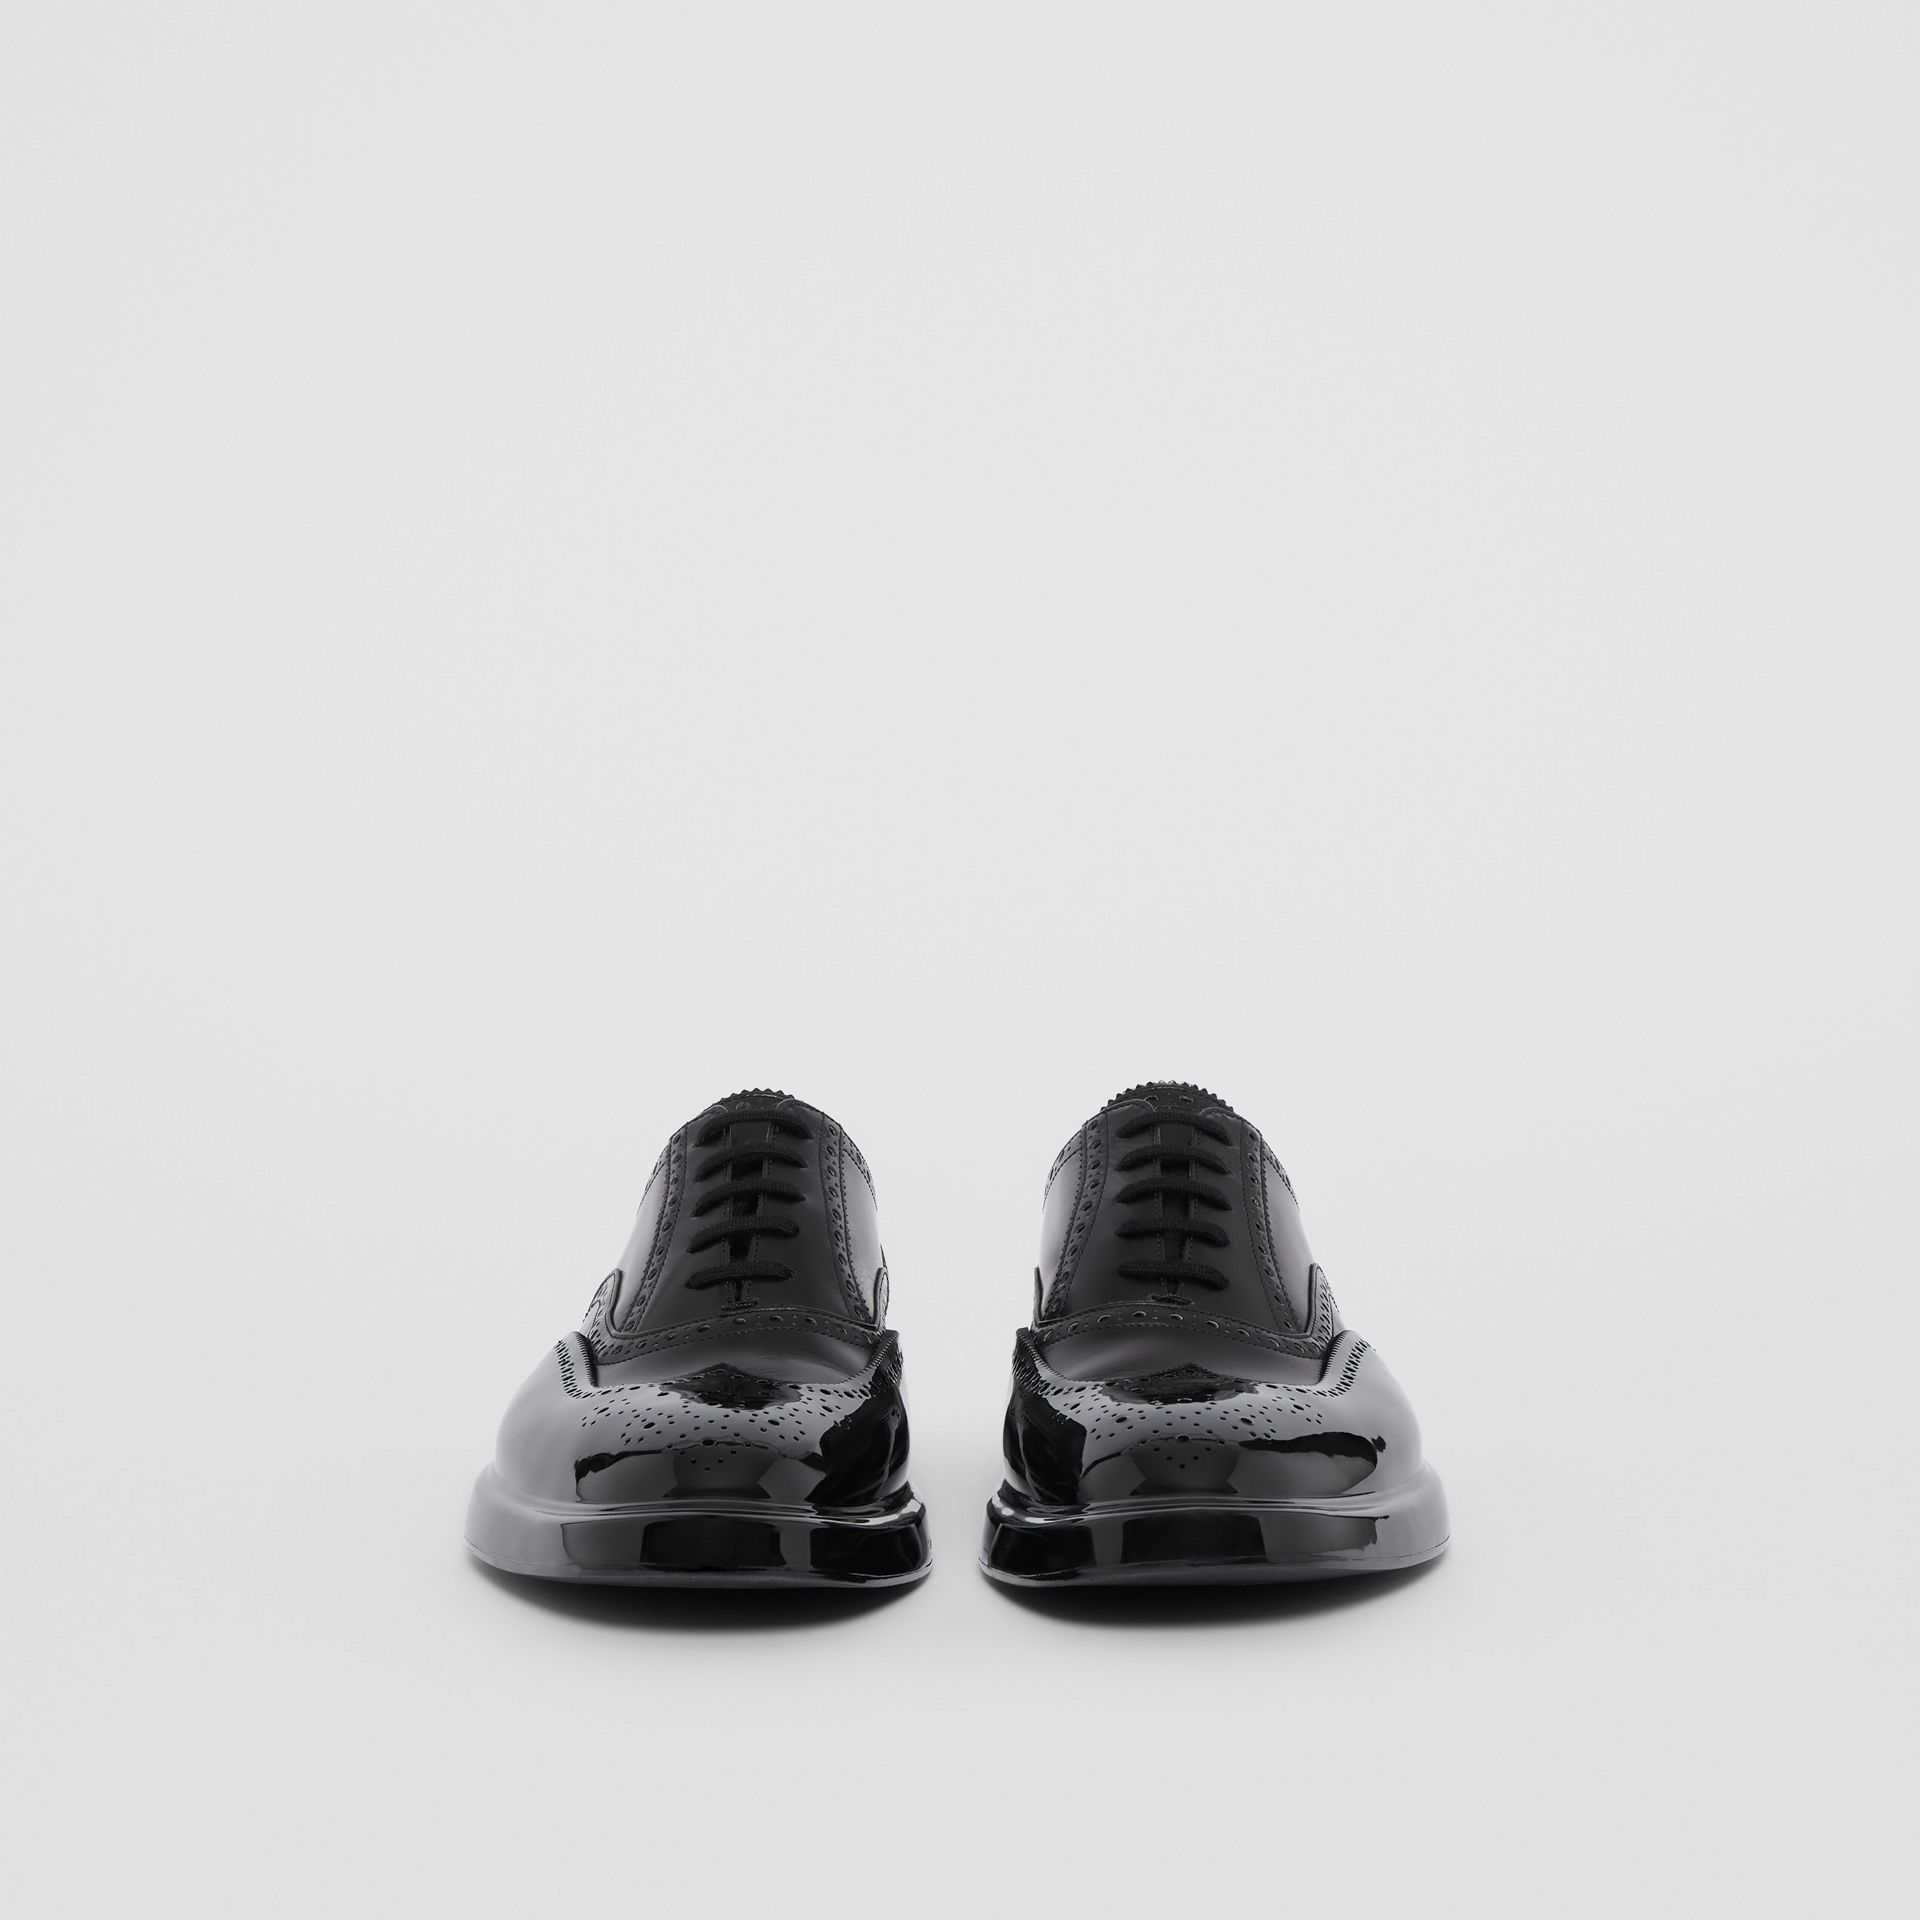 Toe Cap Detail Leather Oxford Brogues in Black - Men | Burberry Hong Kong S.A.R - gallery image 3